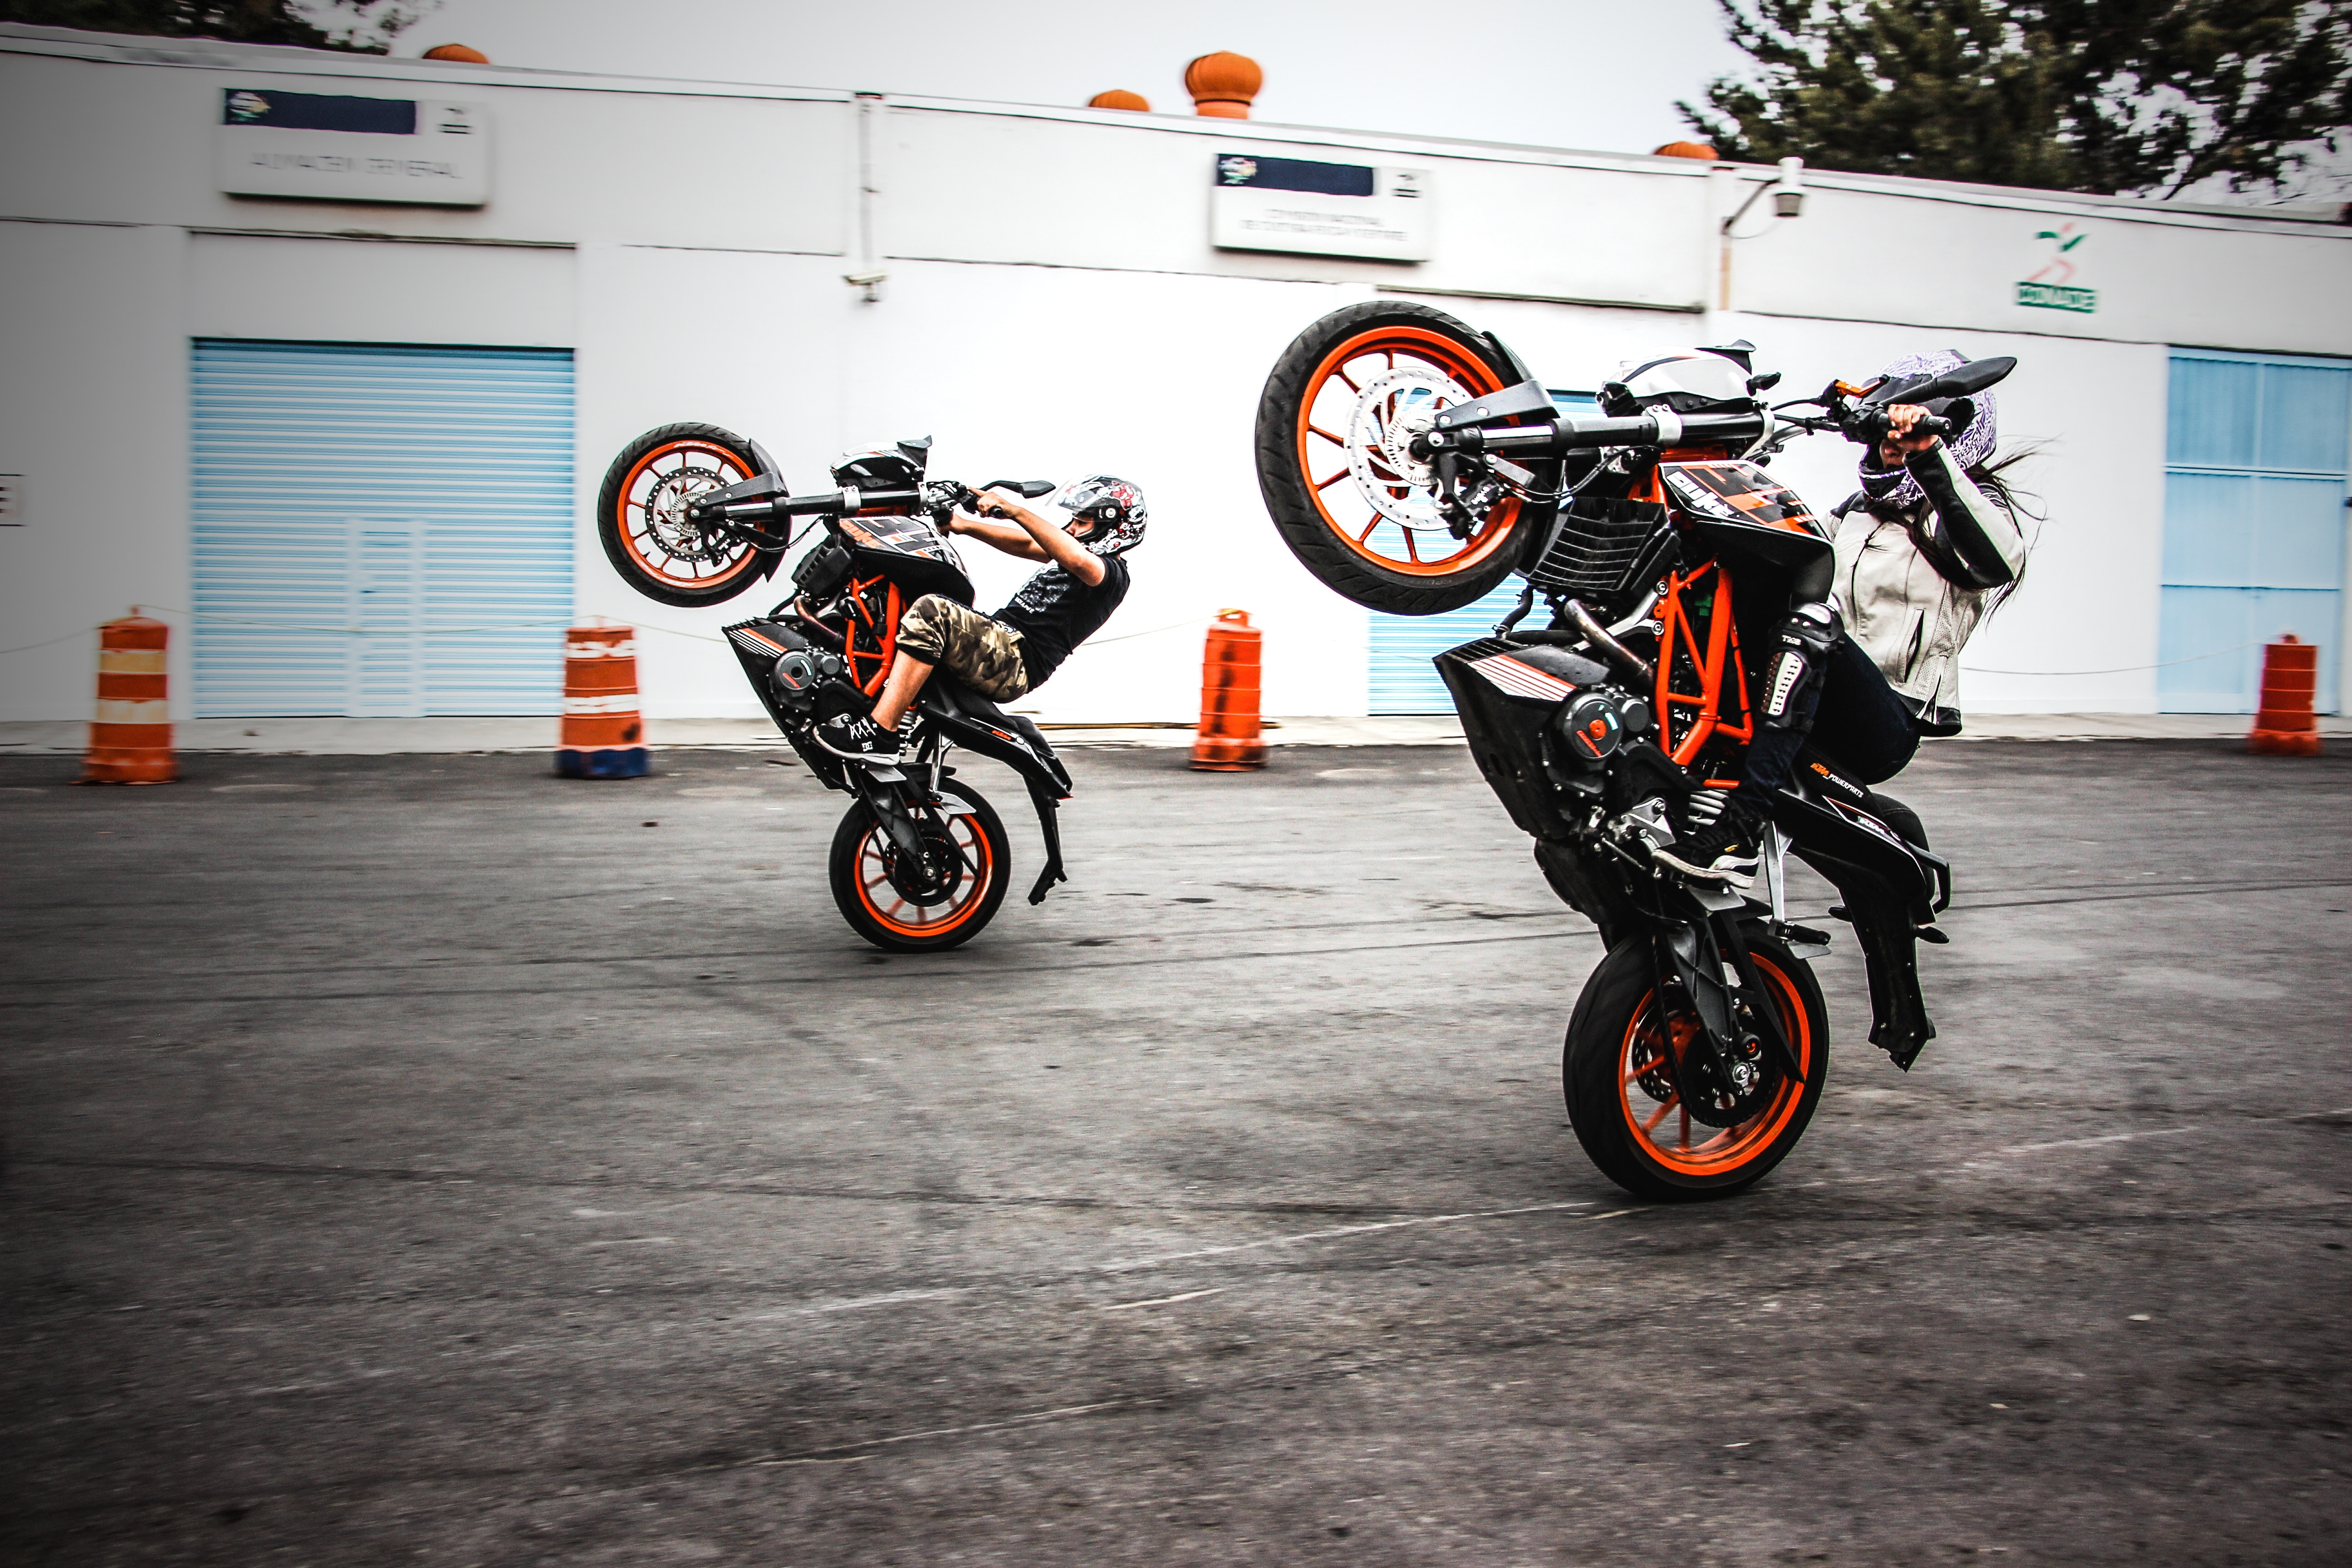 Two Men Riding Orange-and-black Sports Bikes While Doing Exhibition, Action, Outdoors, Transportation system, Stunt, HQ Photo